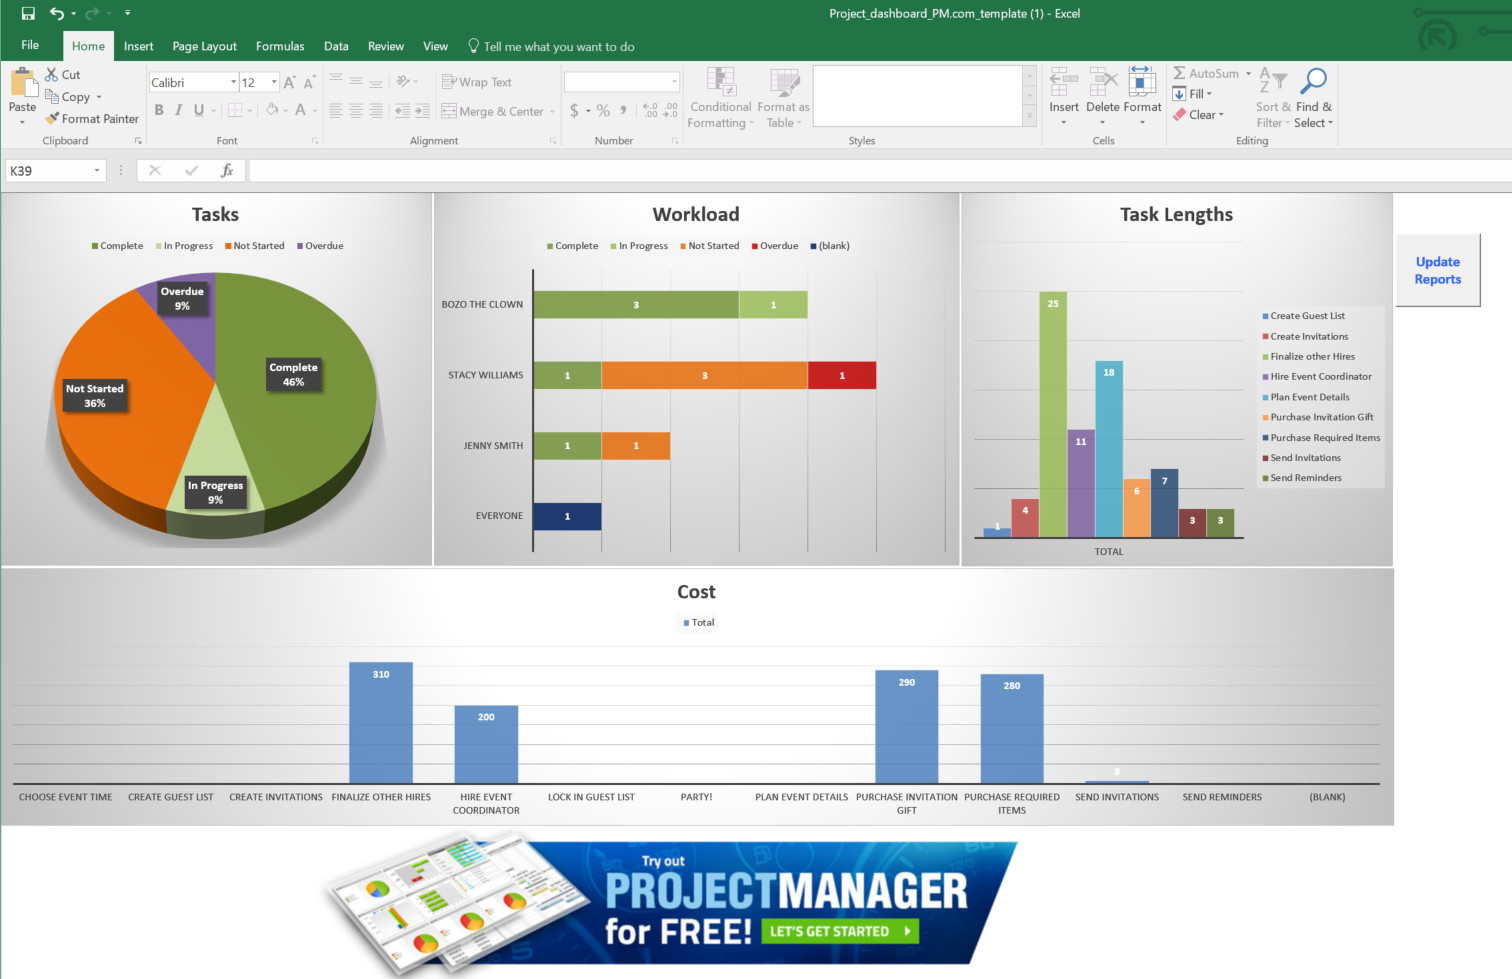 Guide To Excel Project Management - Projectmanager With Excel Project Management Dashboard Template